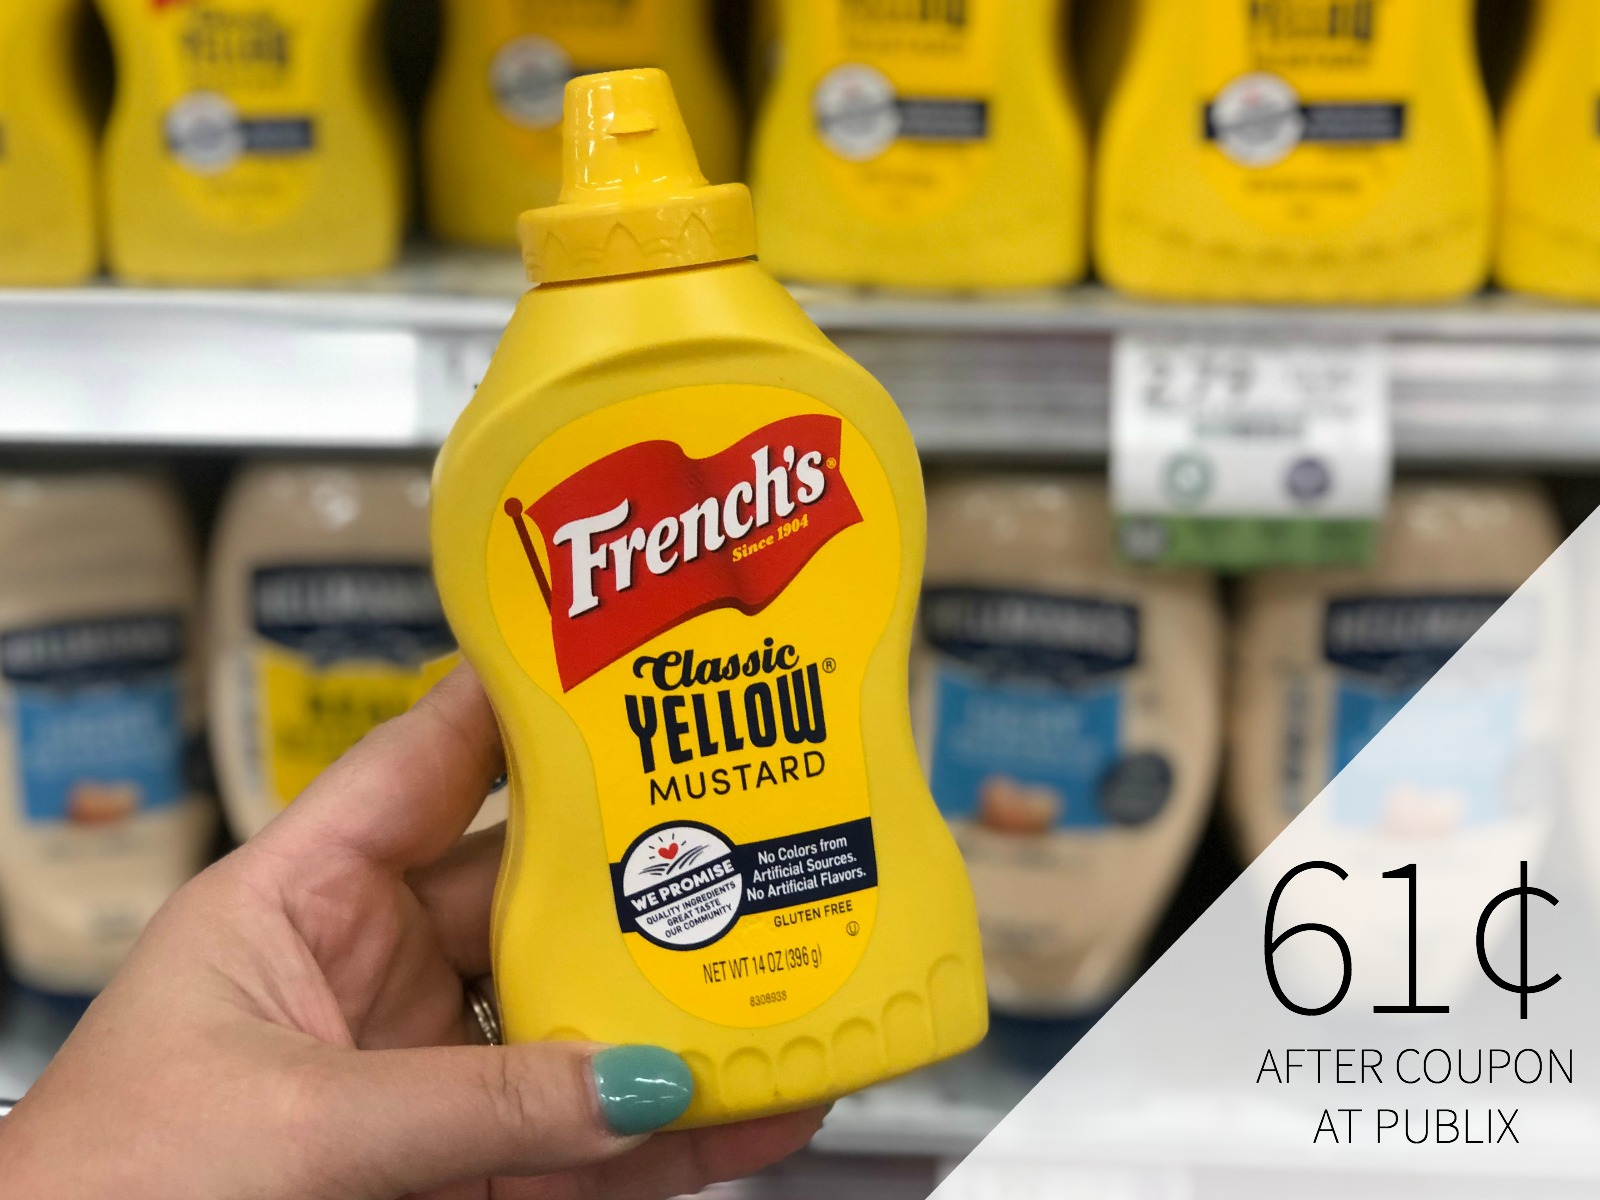 Savings On French's, Frank's and Stubb's Items - Cheap Mustard At Publix